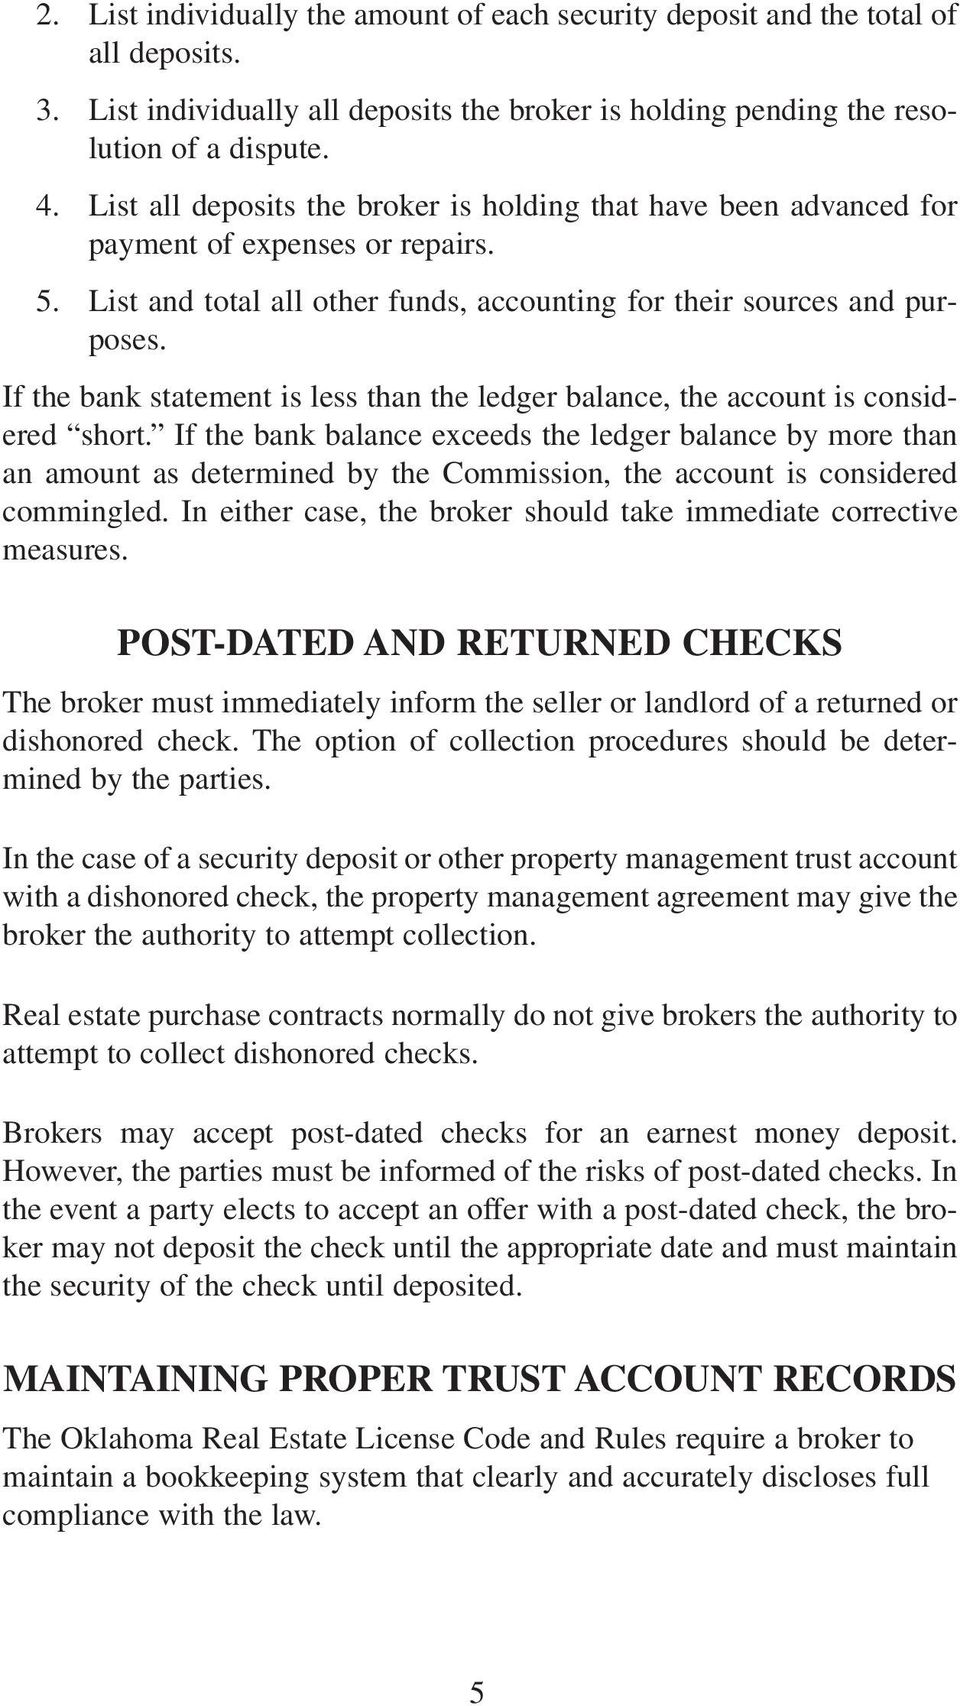 If the bank statement is less than the ledger balance, the account is considered short.